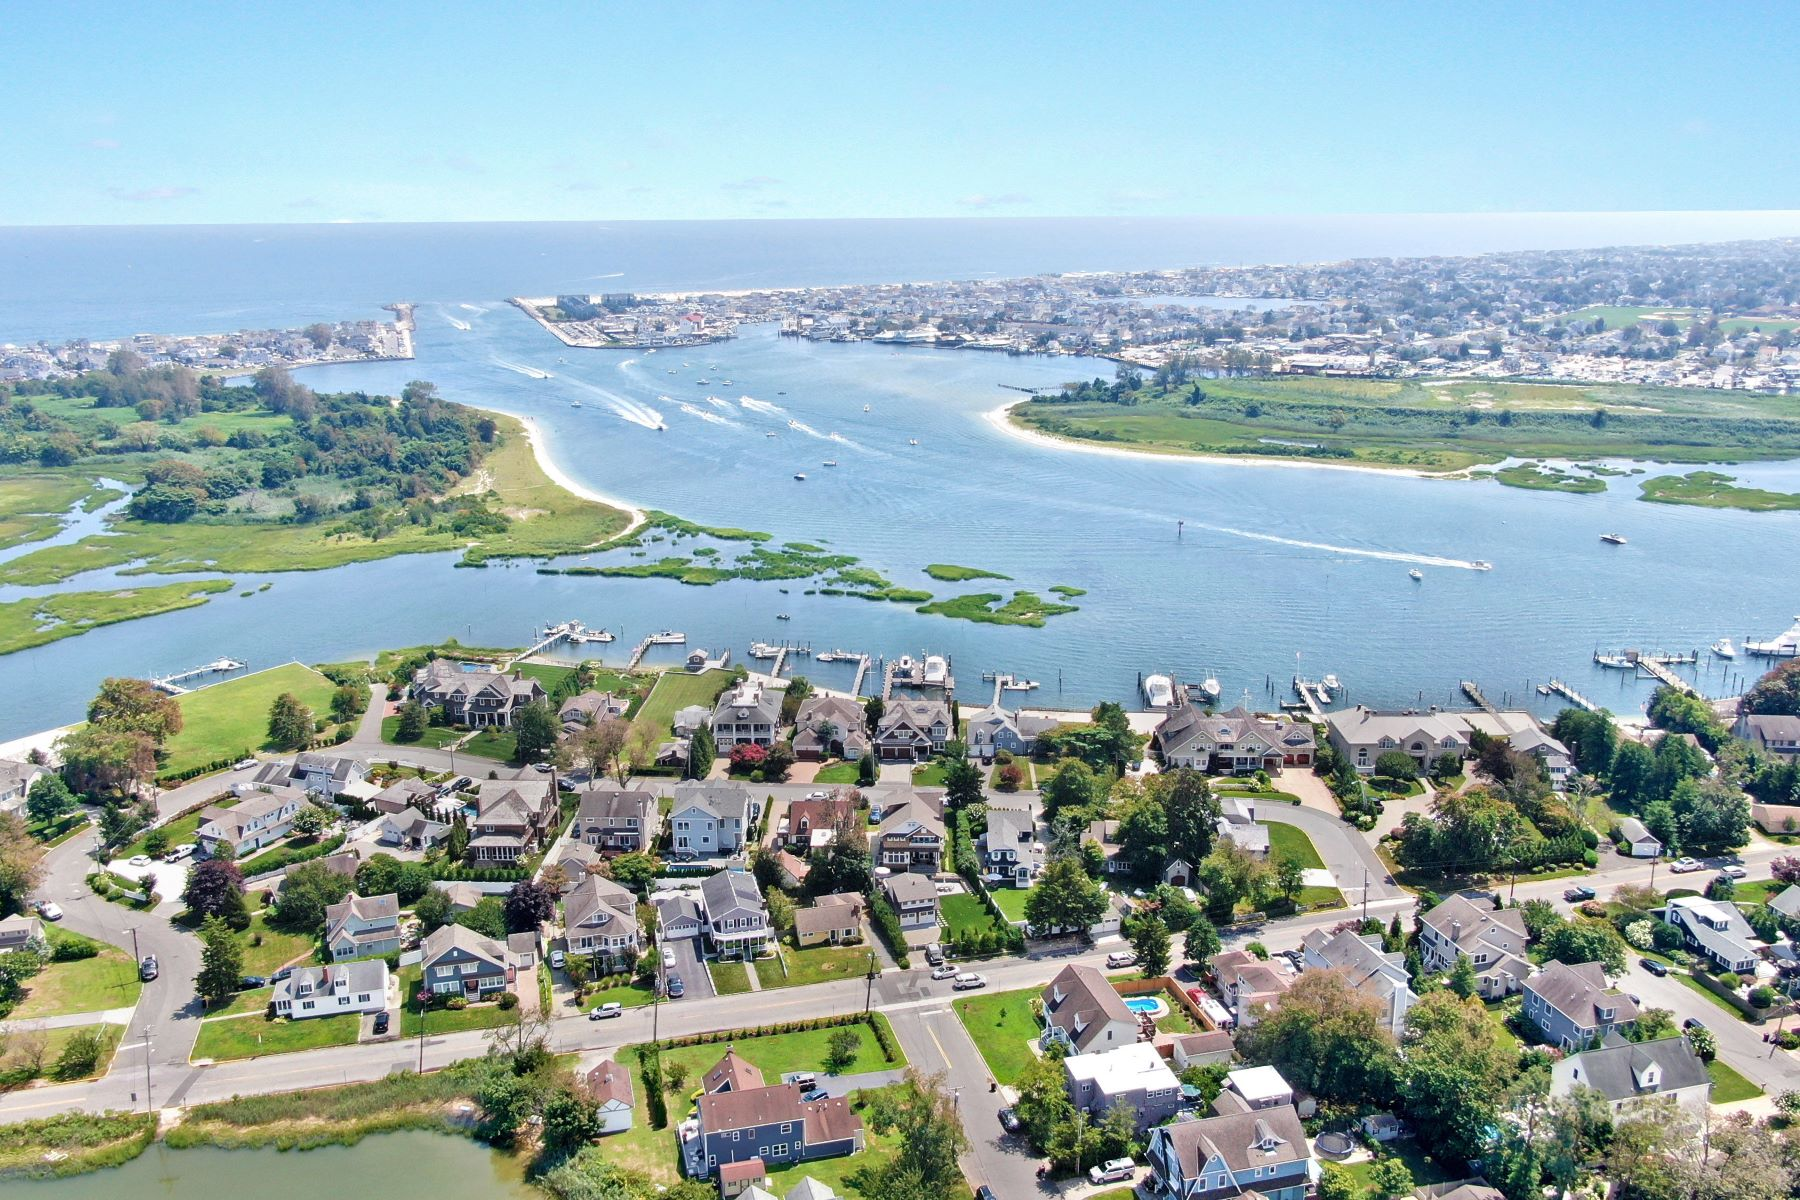 Single Family Homes for Active at Truly Extraordinary Waterfront Opportunity 8 Crescent Drive Brielle, New Jersey 08730 United States